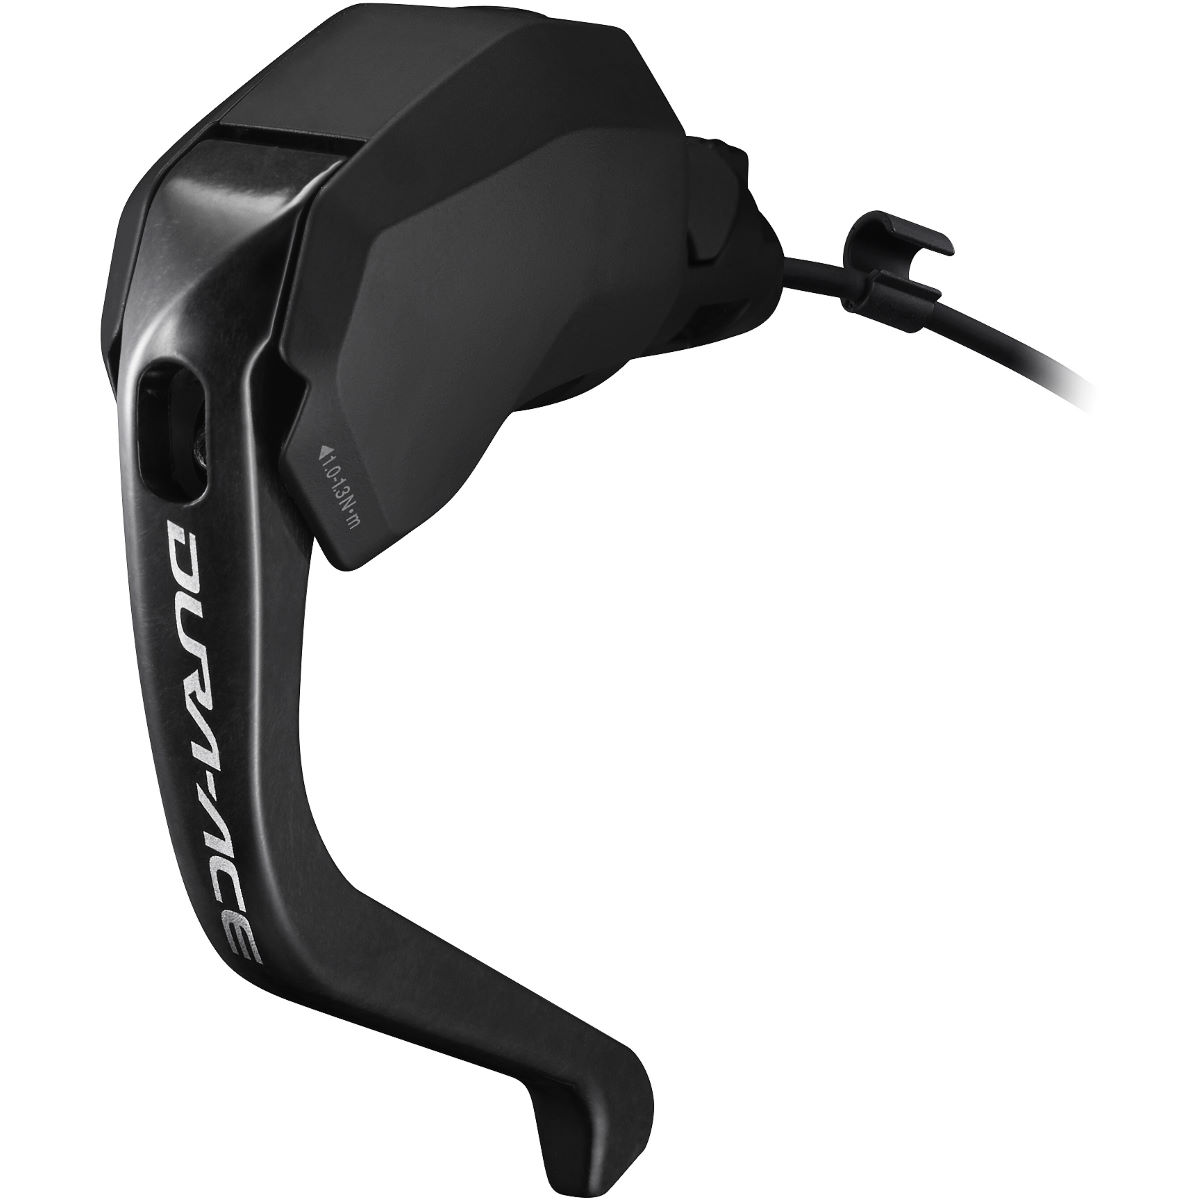 Shimano Dura Ace R9180 Di2 TT Shifter - Left Hand Black | Gear Levers